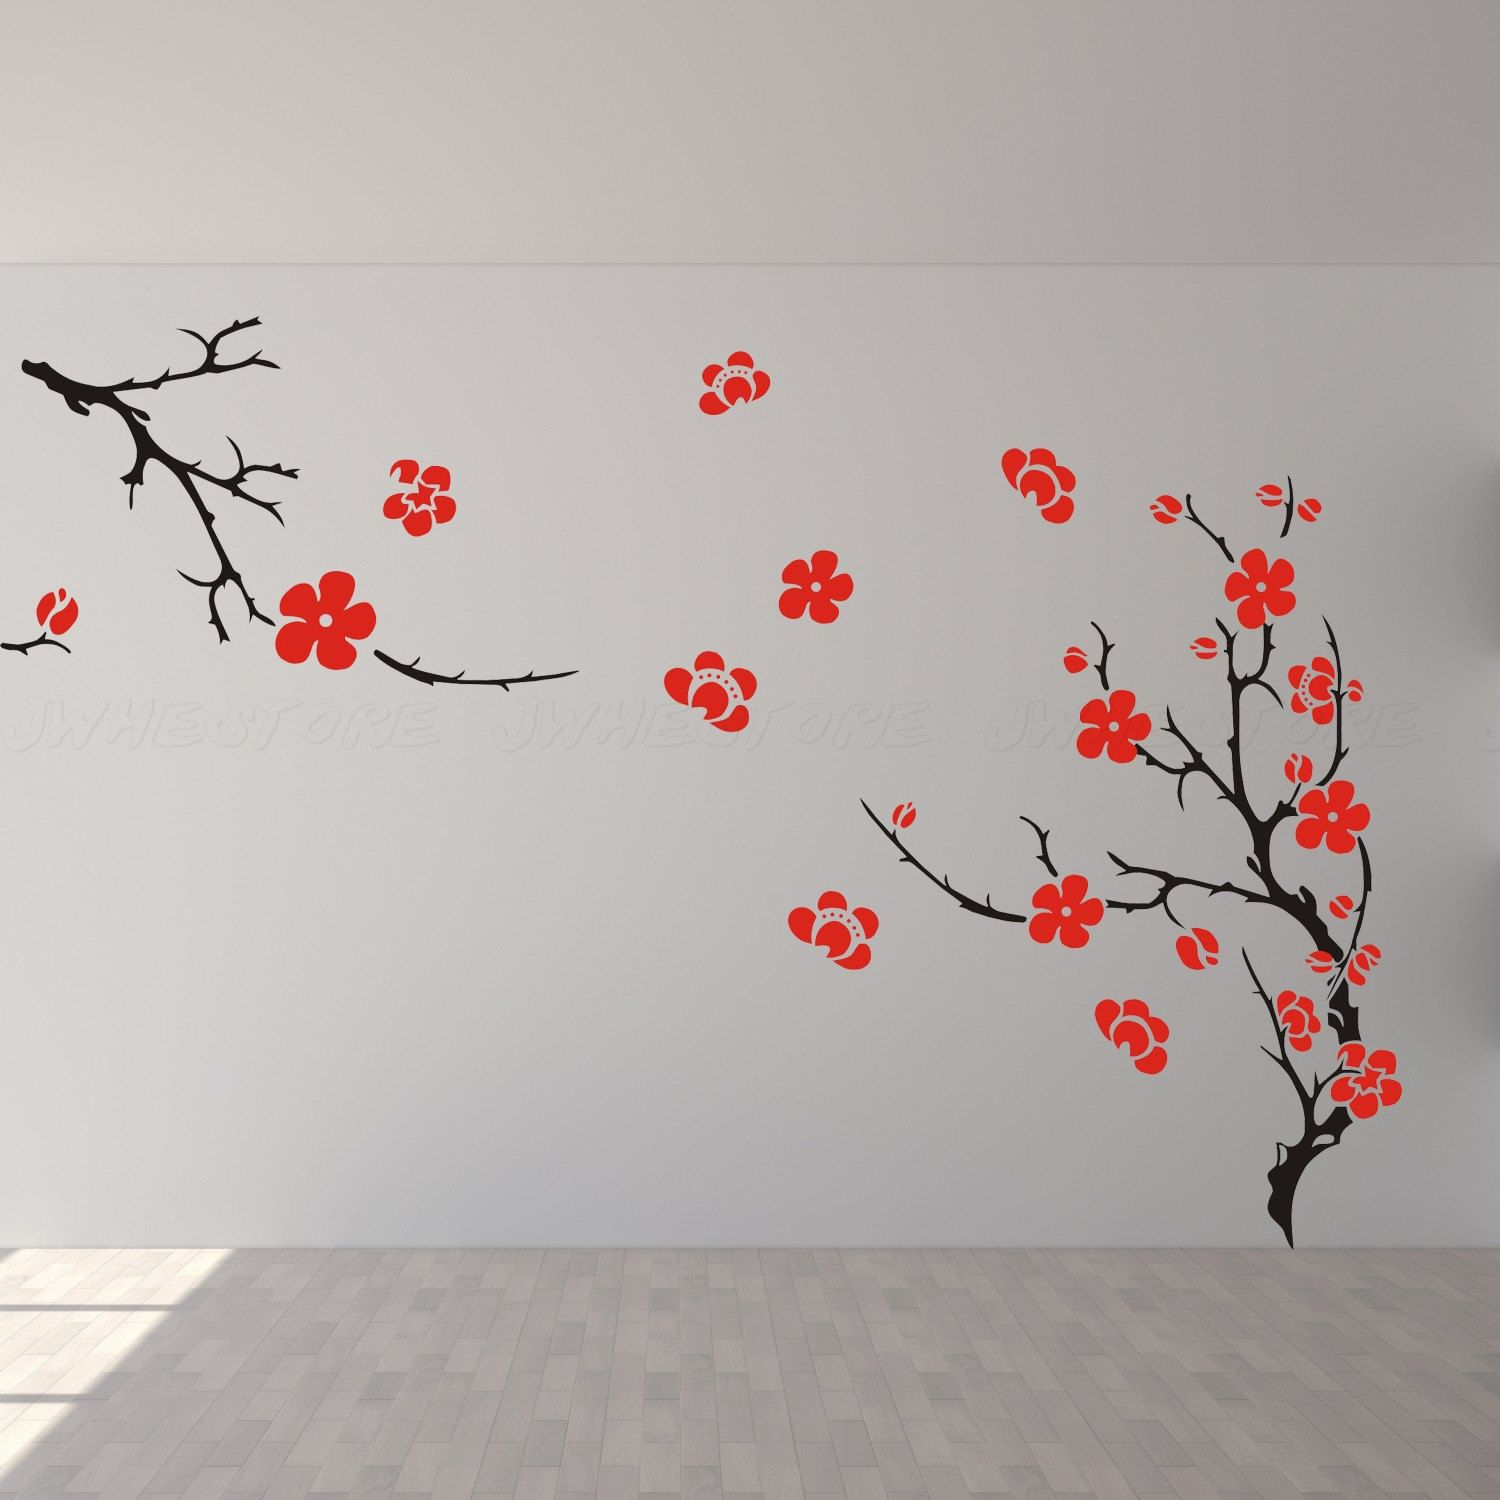 cherry blossom wall decor wall decal wall art wall sticker for bedroom living room J529. $69.00, via Etsy.